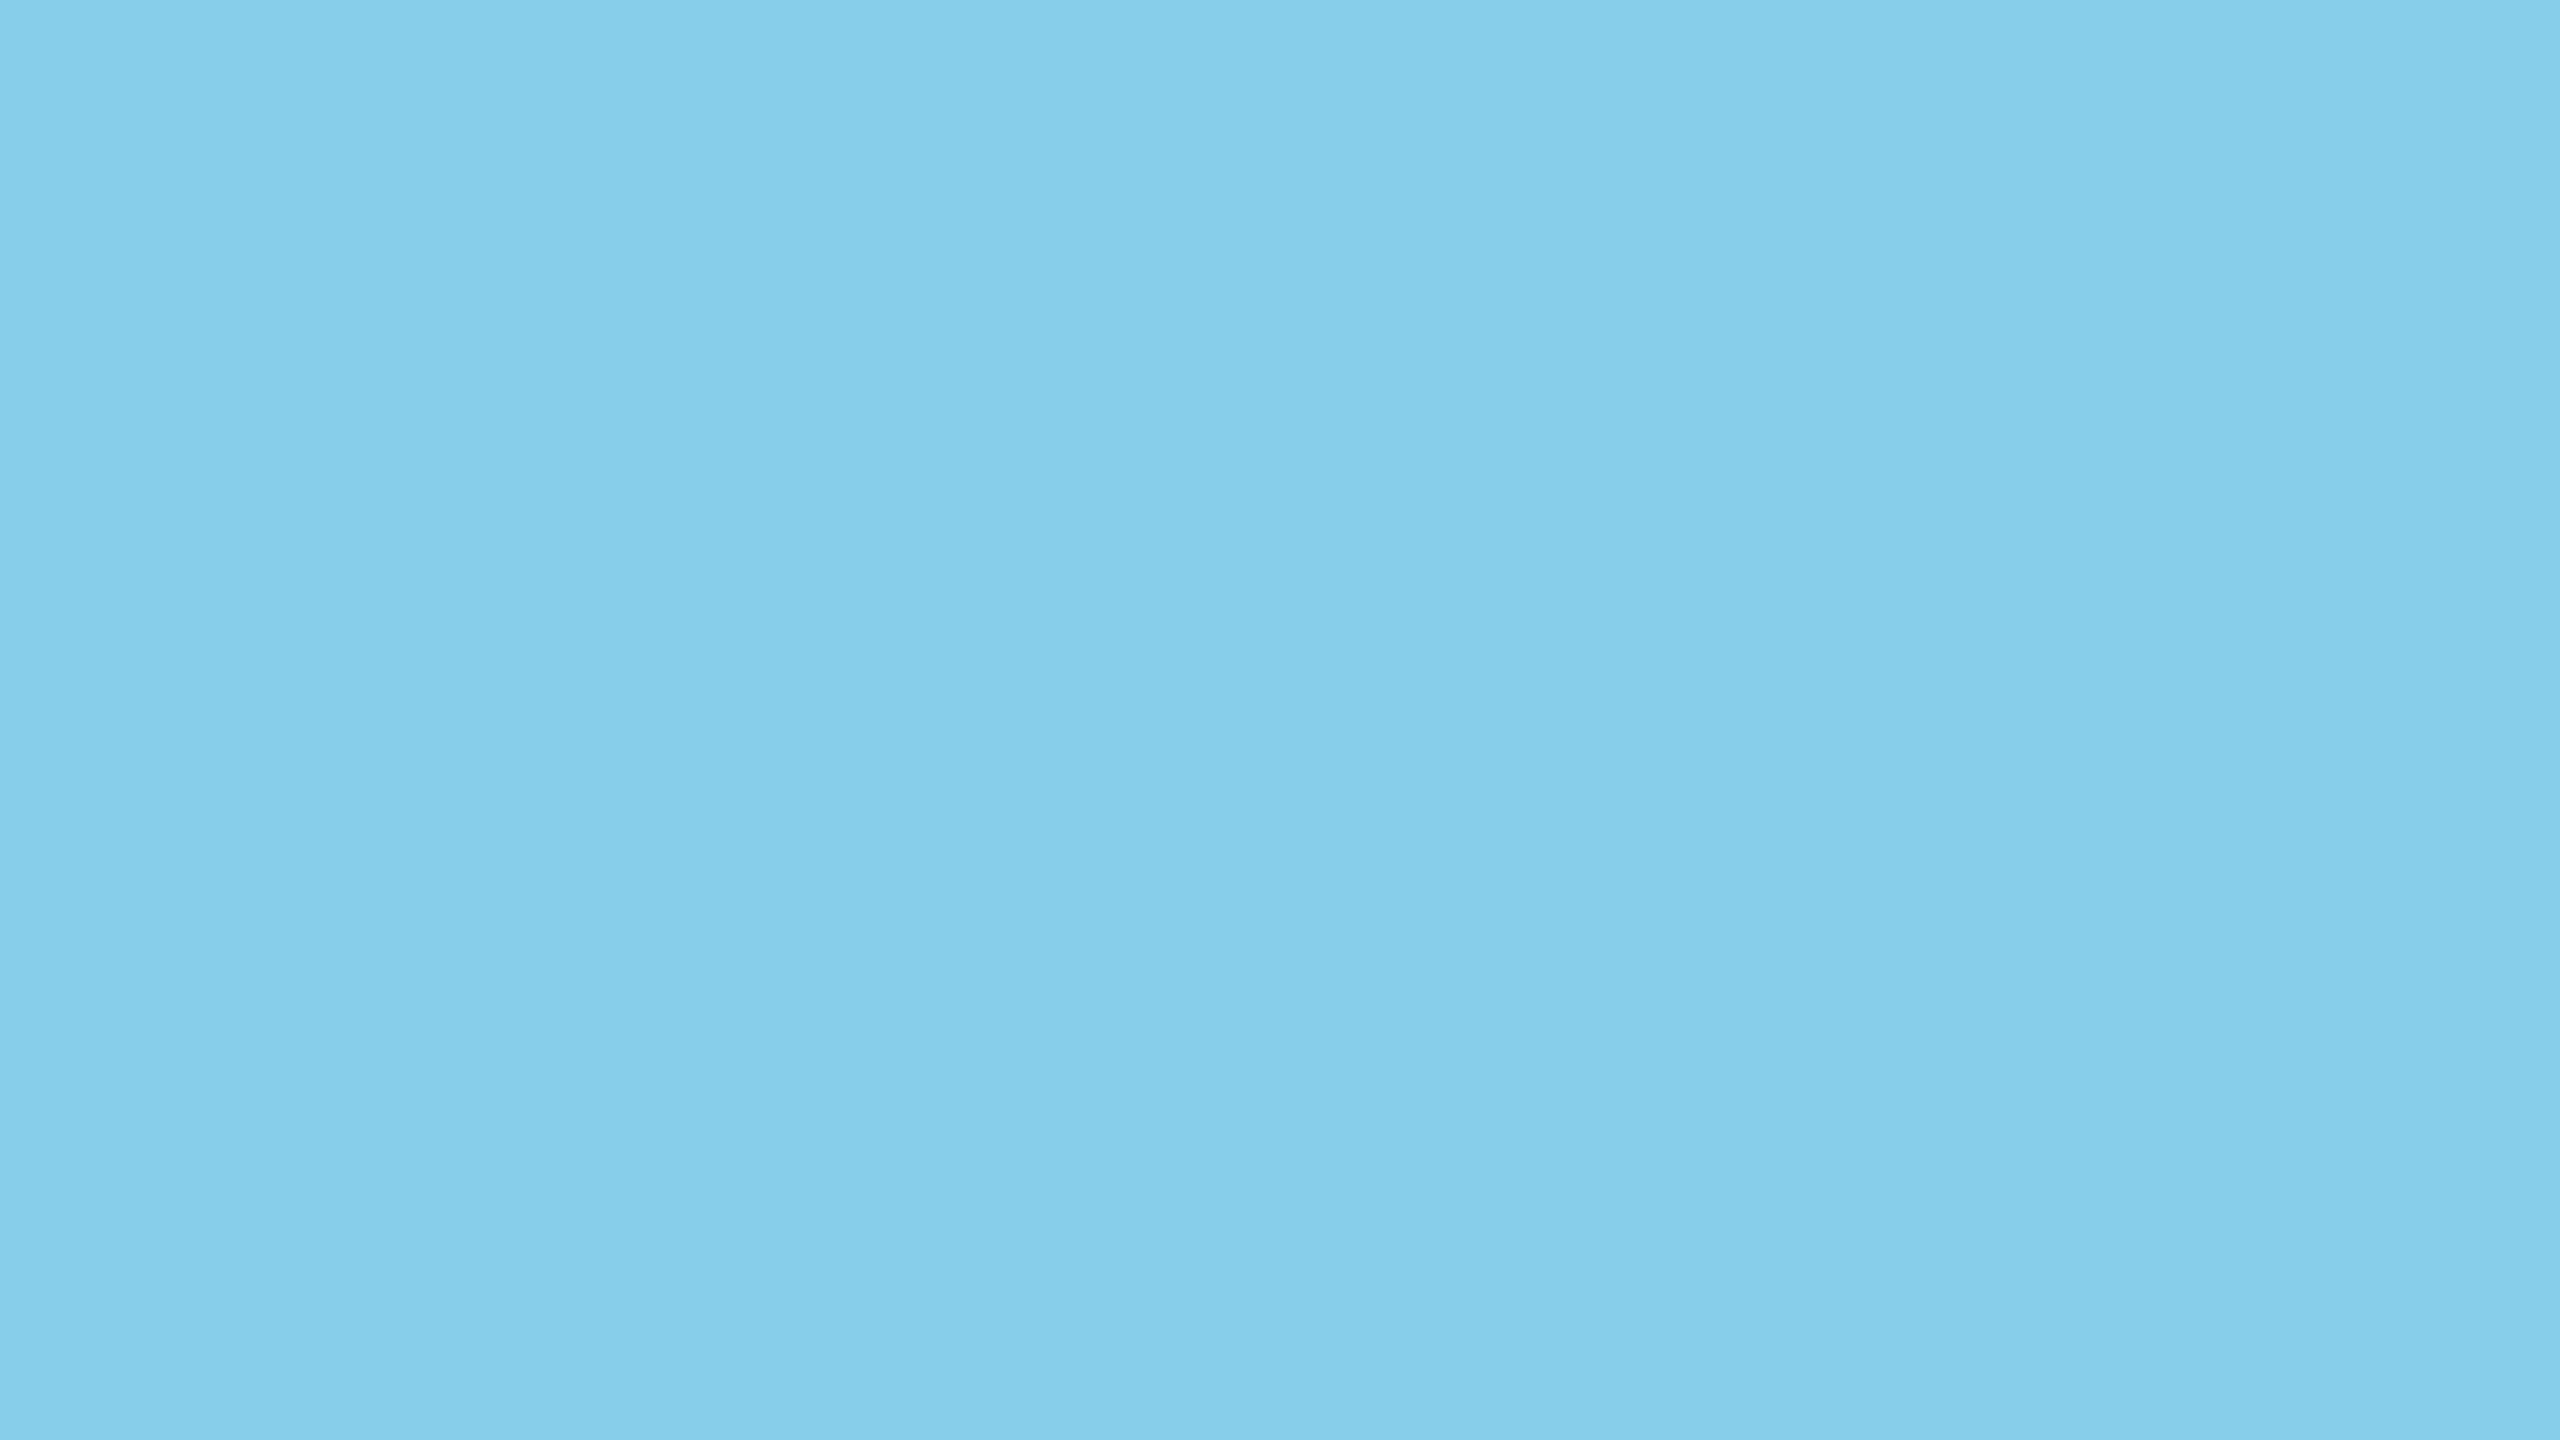 Pin download 2560x1440 blue shades wallpaper on pinterest for Light sky blue paint